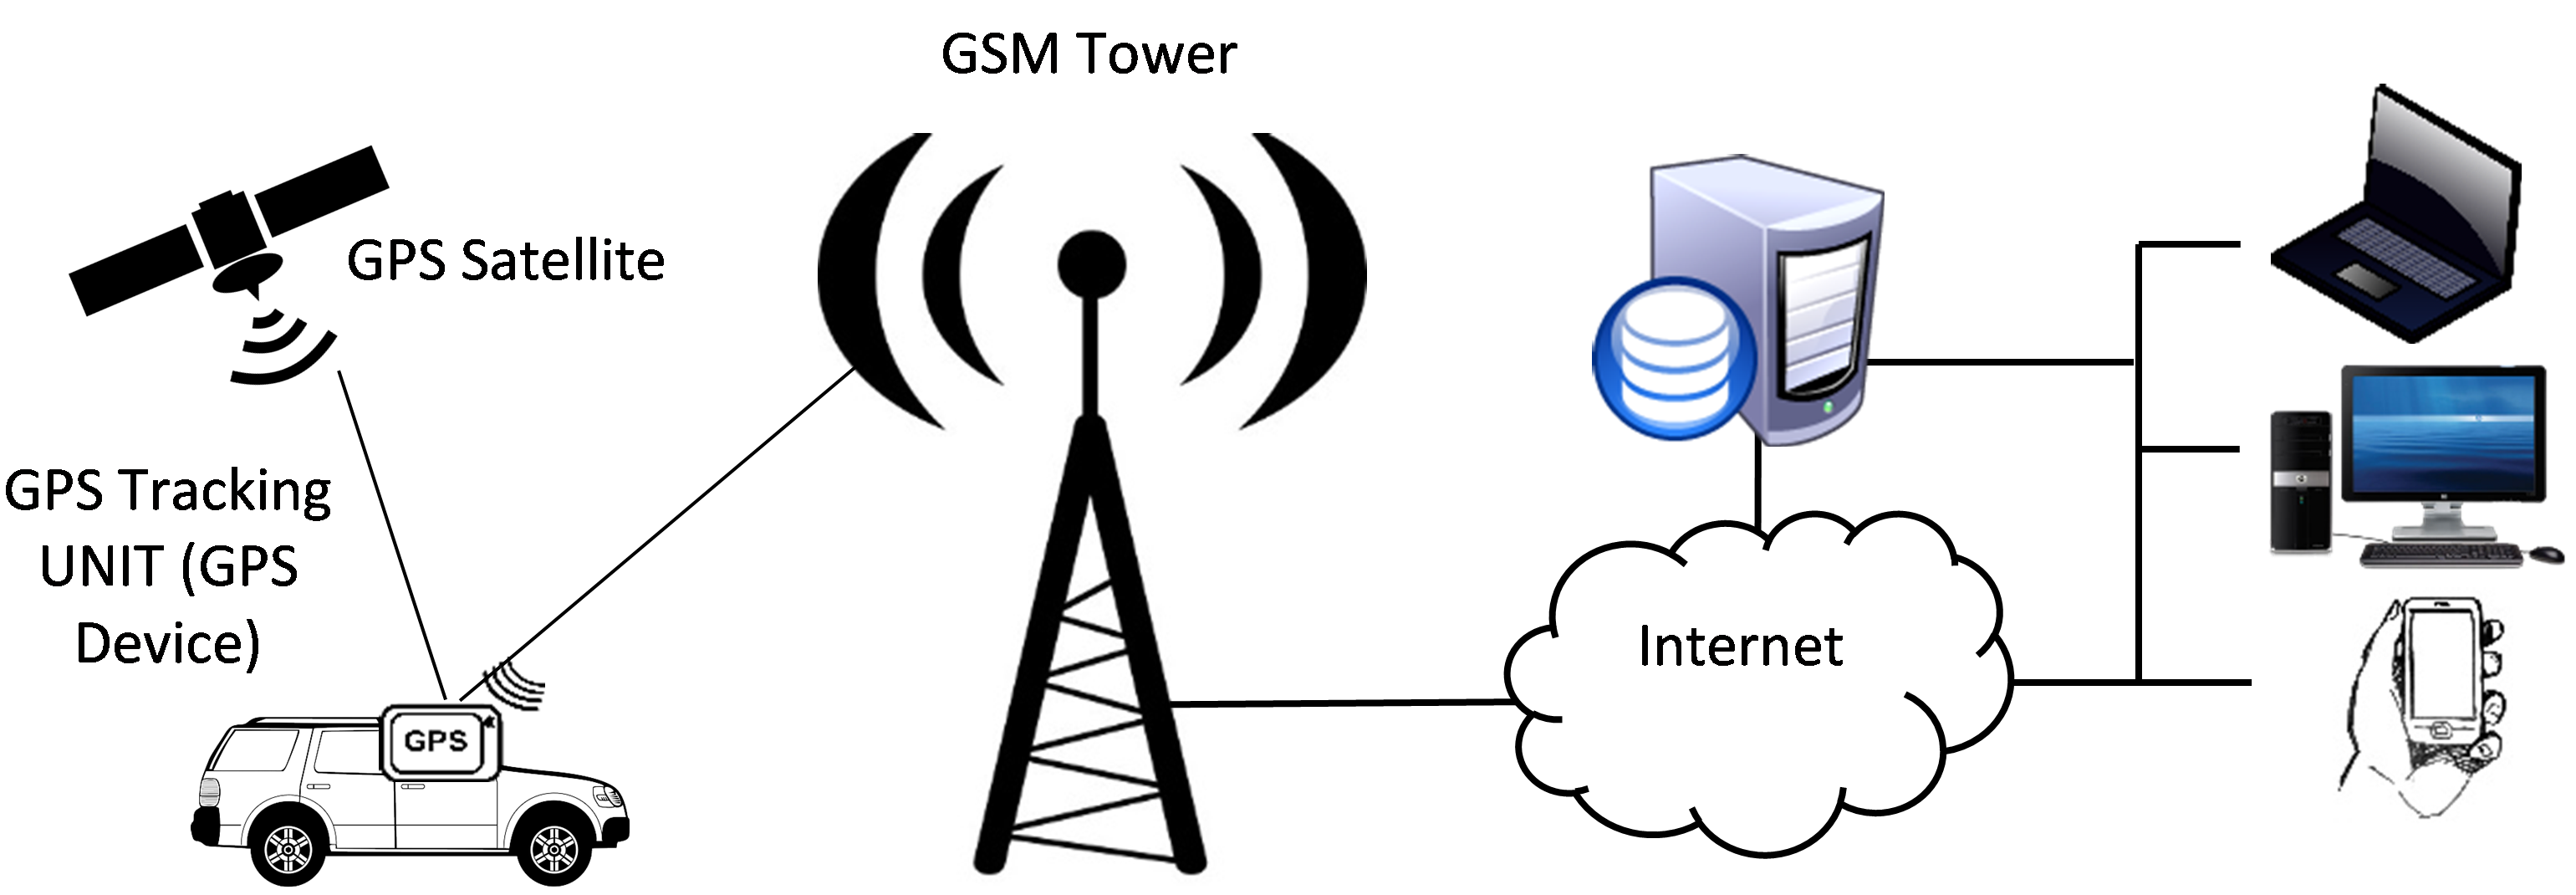 Gps clipart gps tracking. System standing tech company